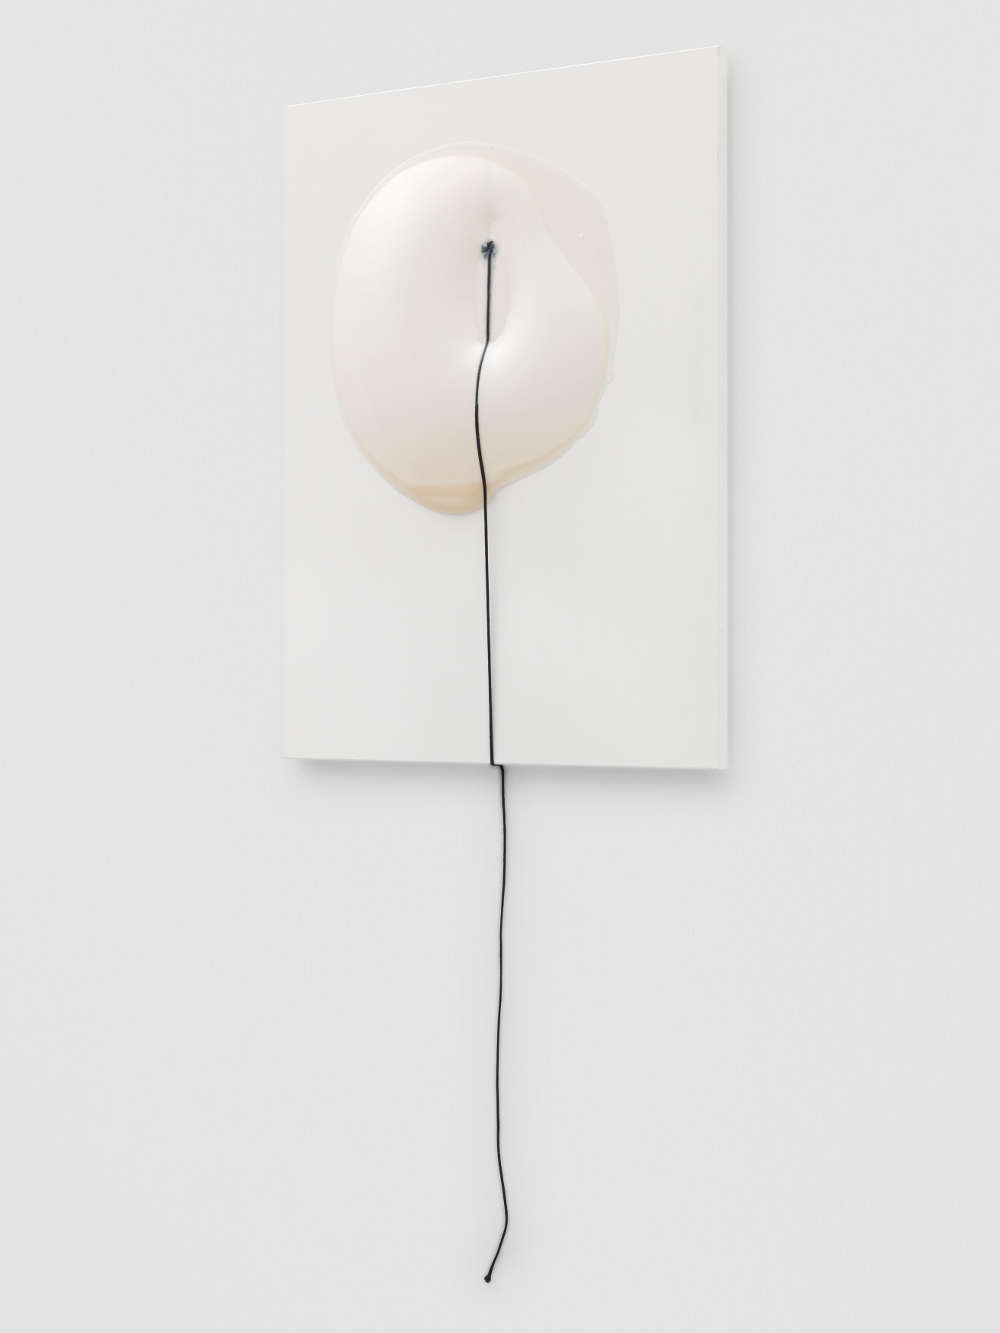 Takesada Matsutani, Line for Circle, 2018. Vinyl adhesive and string on canvas 100 x 81 x 6 cm / 39 3/8 x 31 7/8 x 2 3/8 in © Takesada Matsutani. Courtesy of the artist and Hauser & Wirth